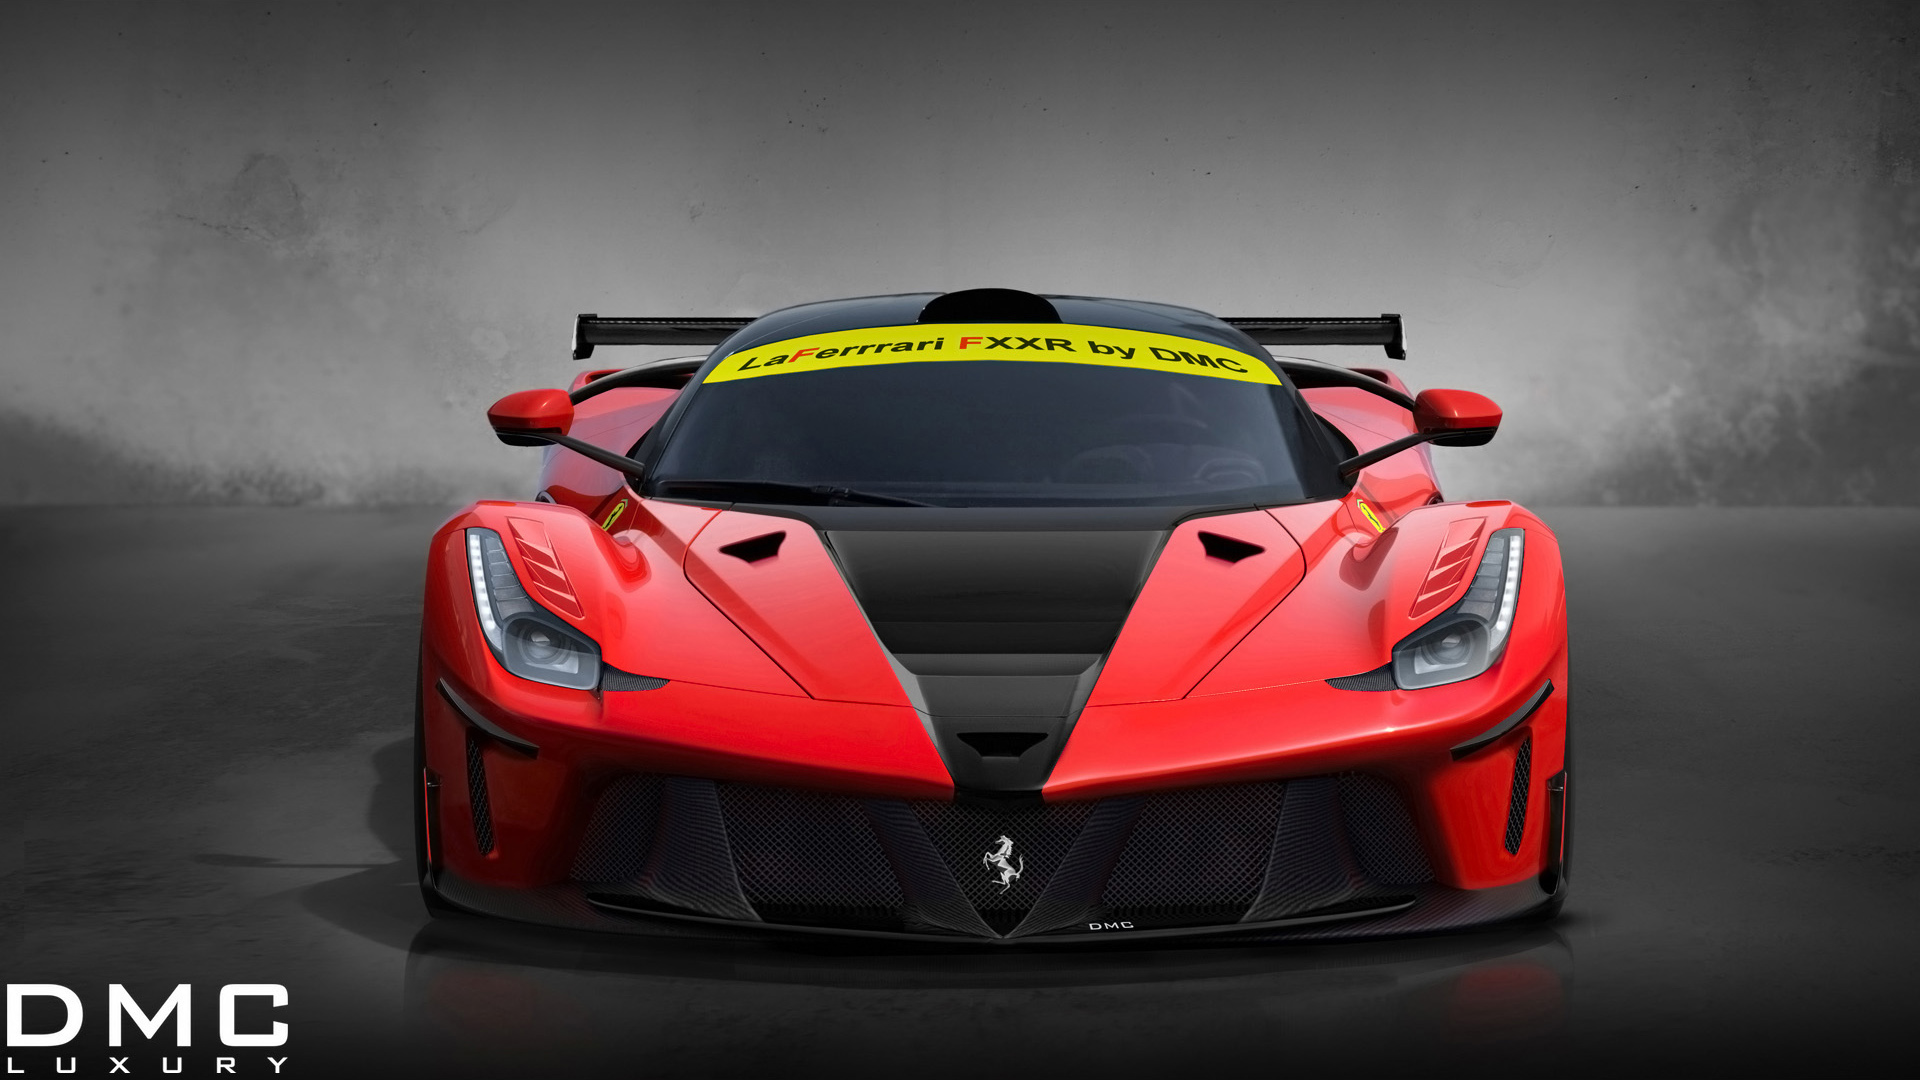 DMC Ferrari Wallpaper HD Computers